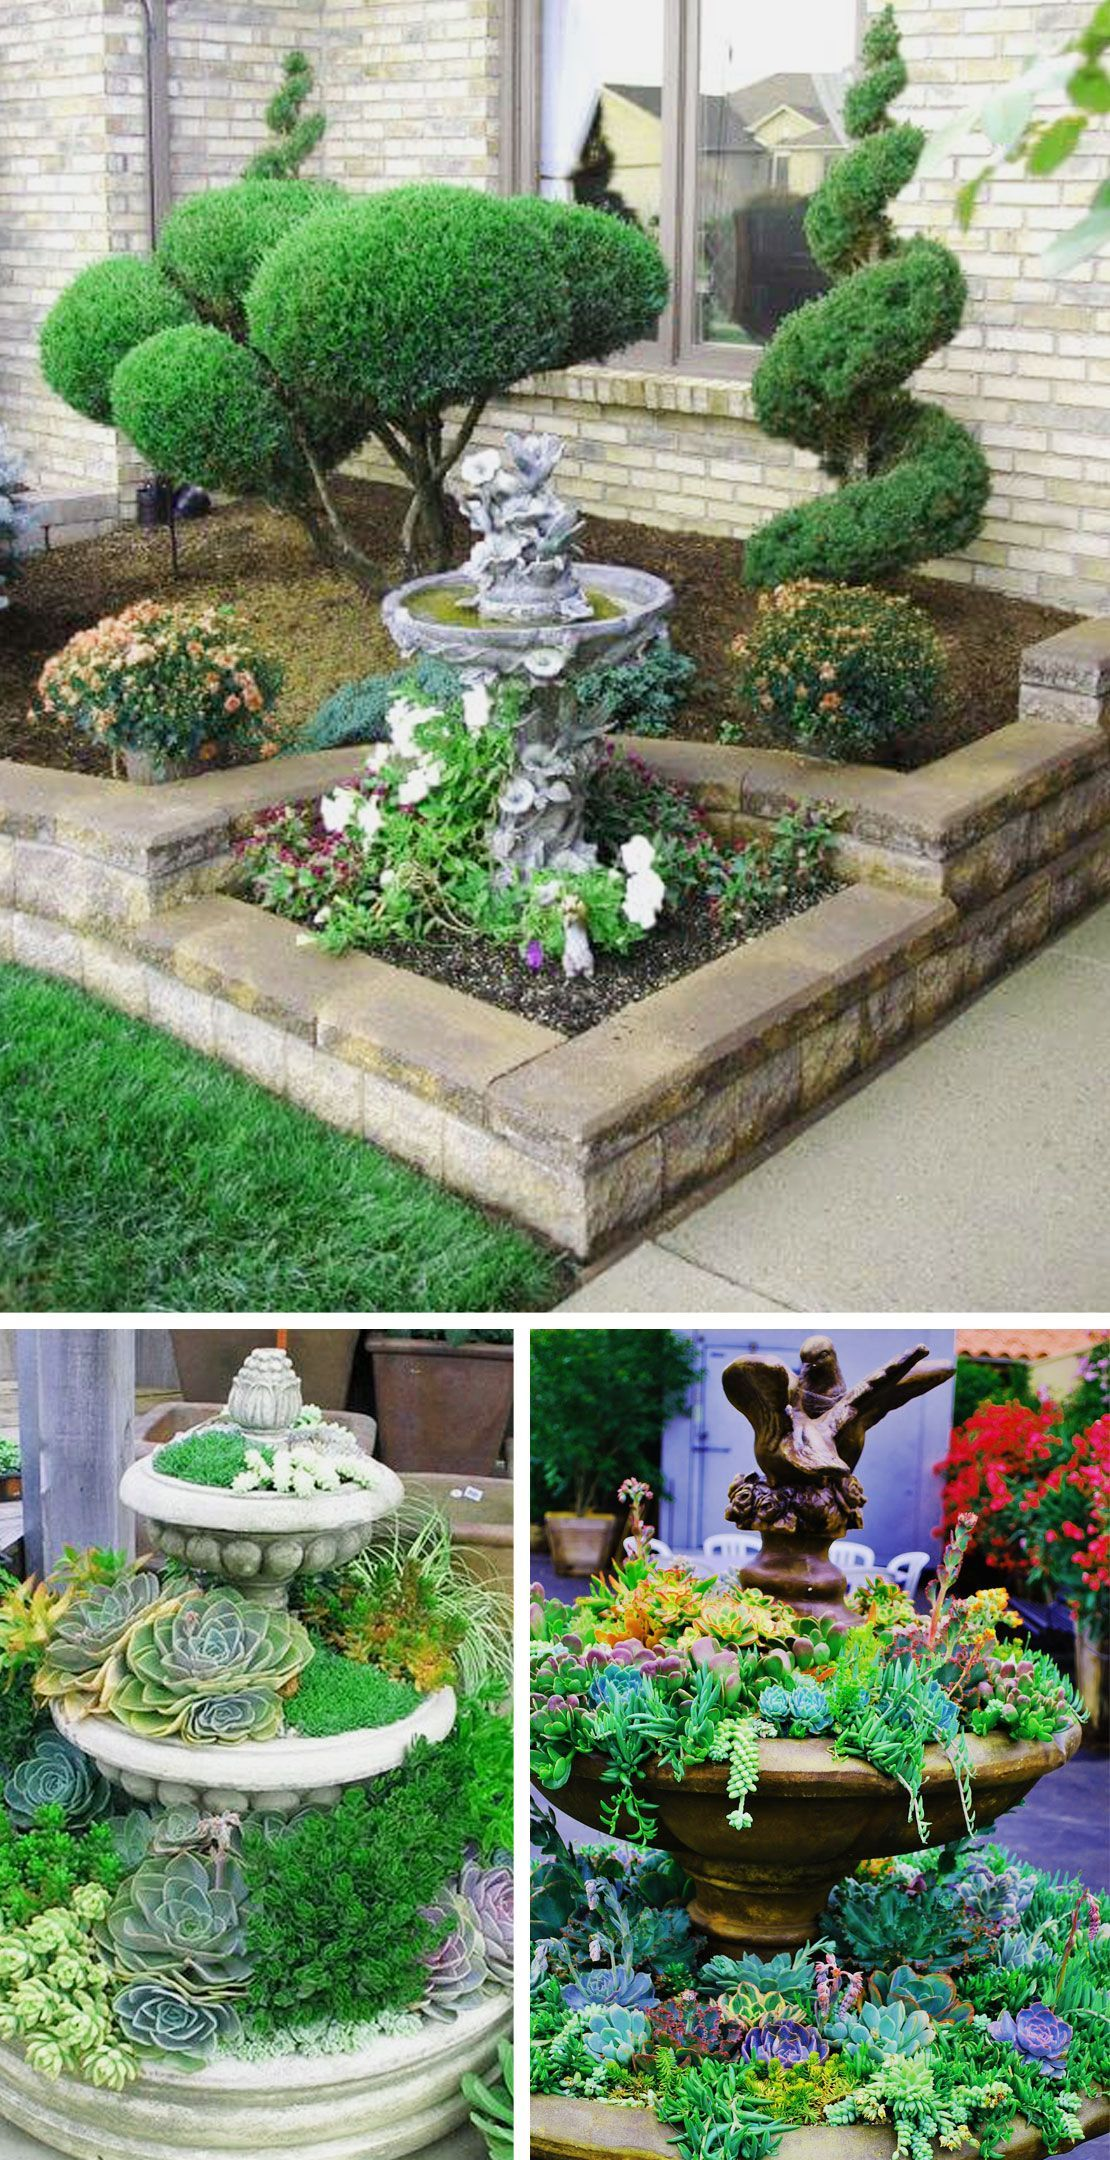 10 Small Urban Garden Ideas Amazing